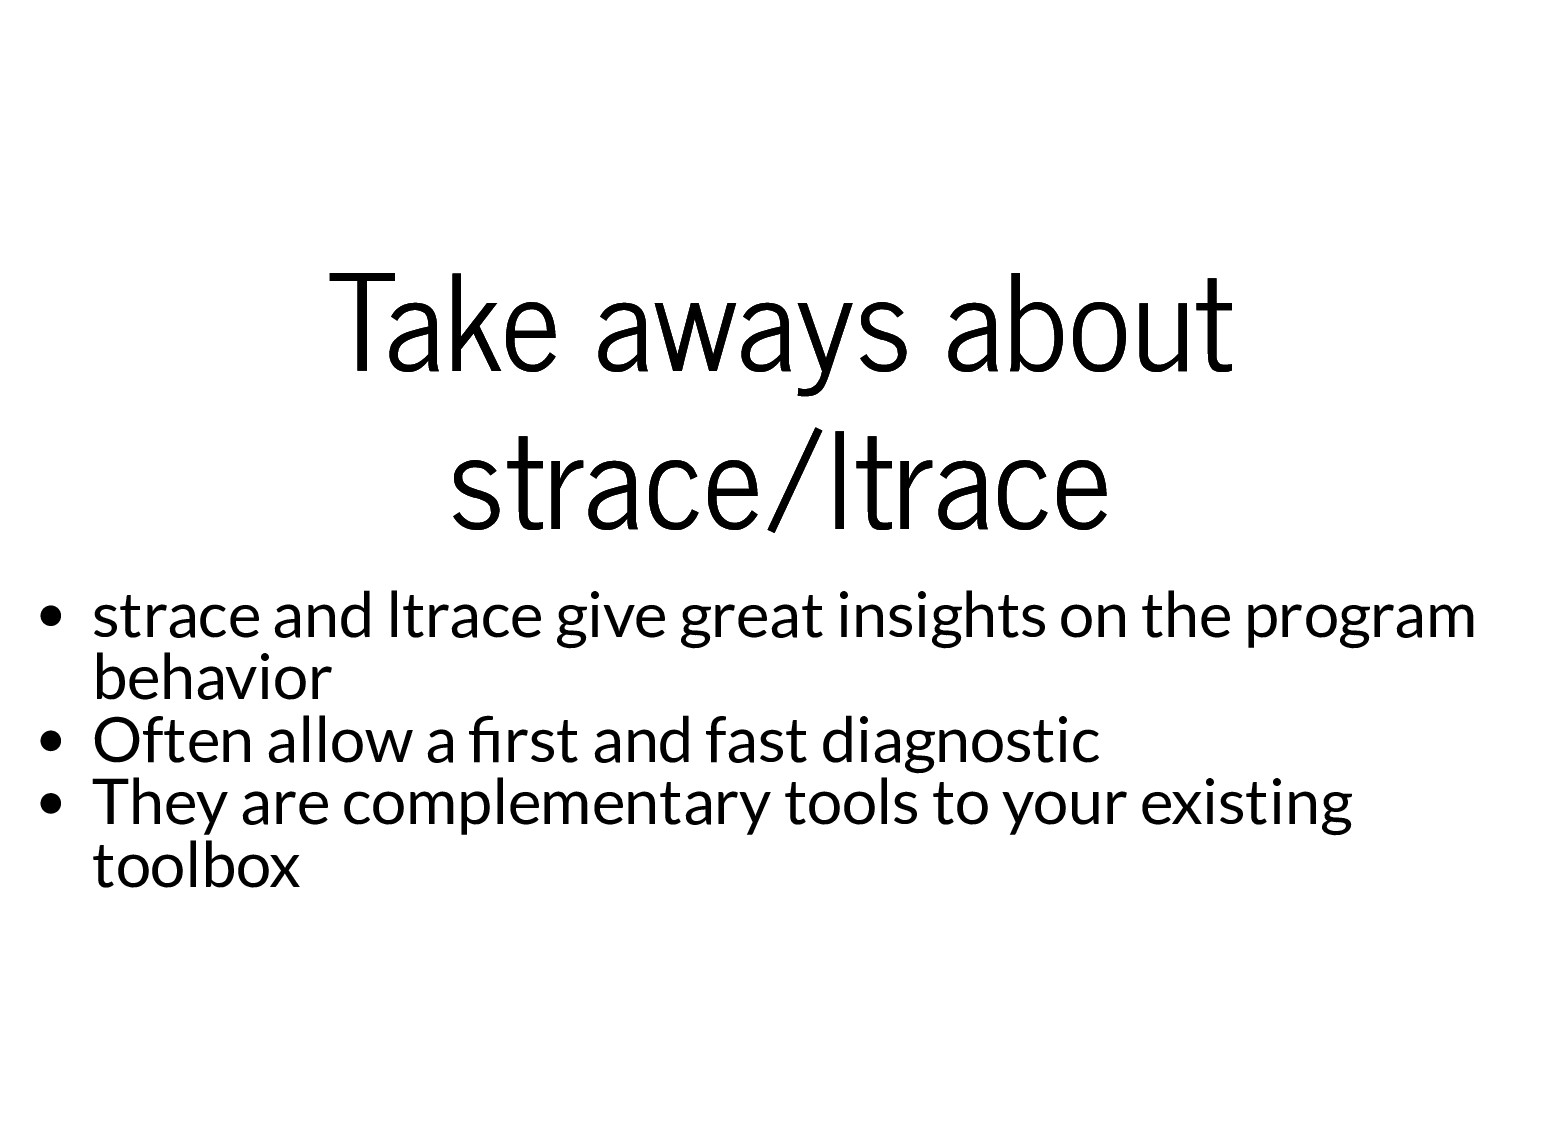 Take aways about Take aways about strace/ltrace...